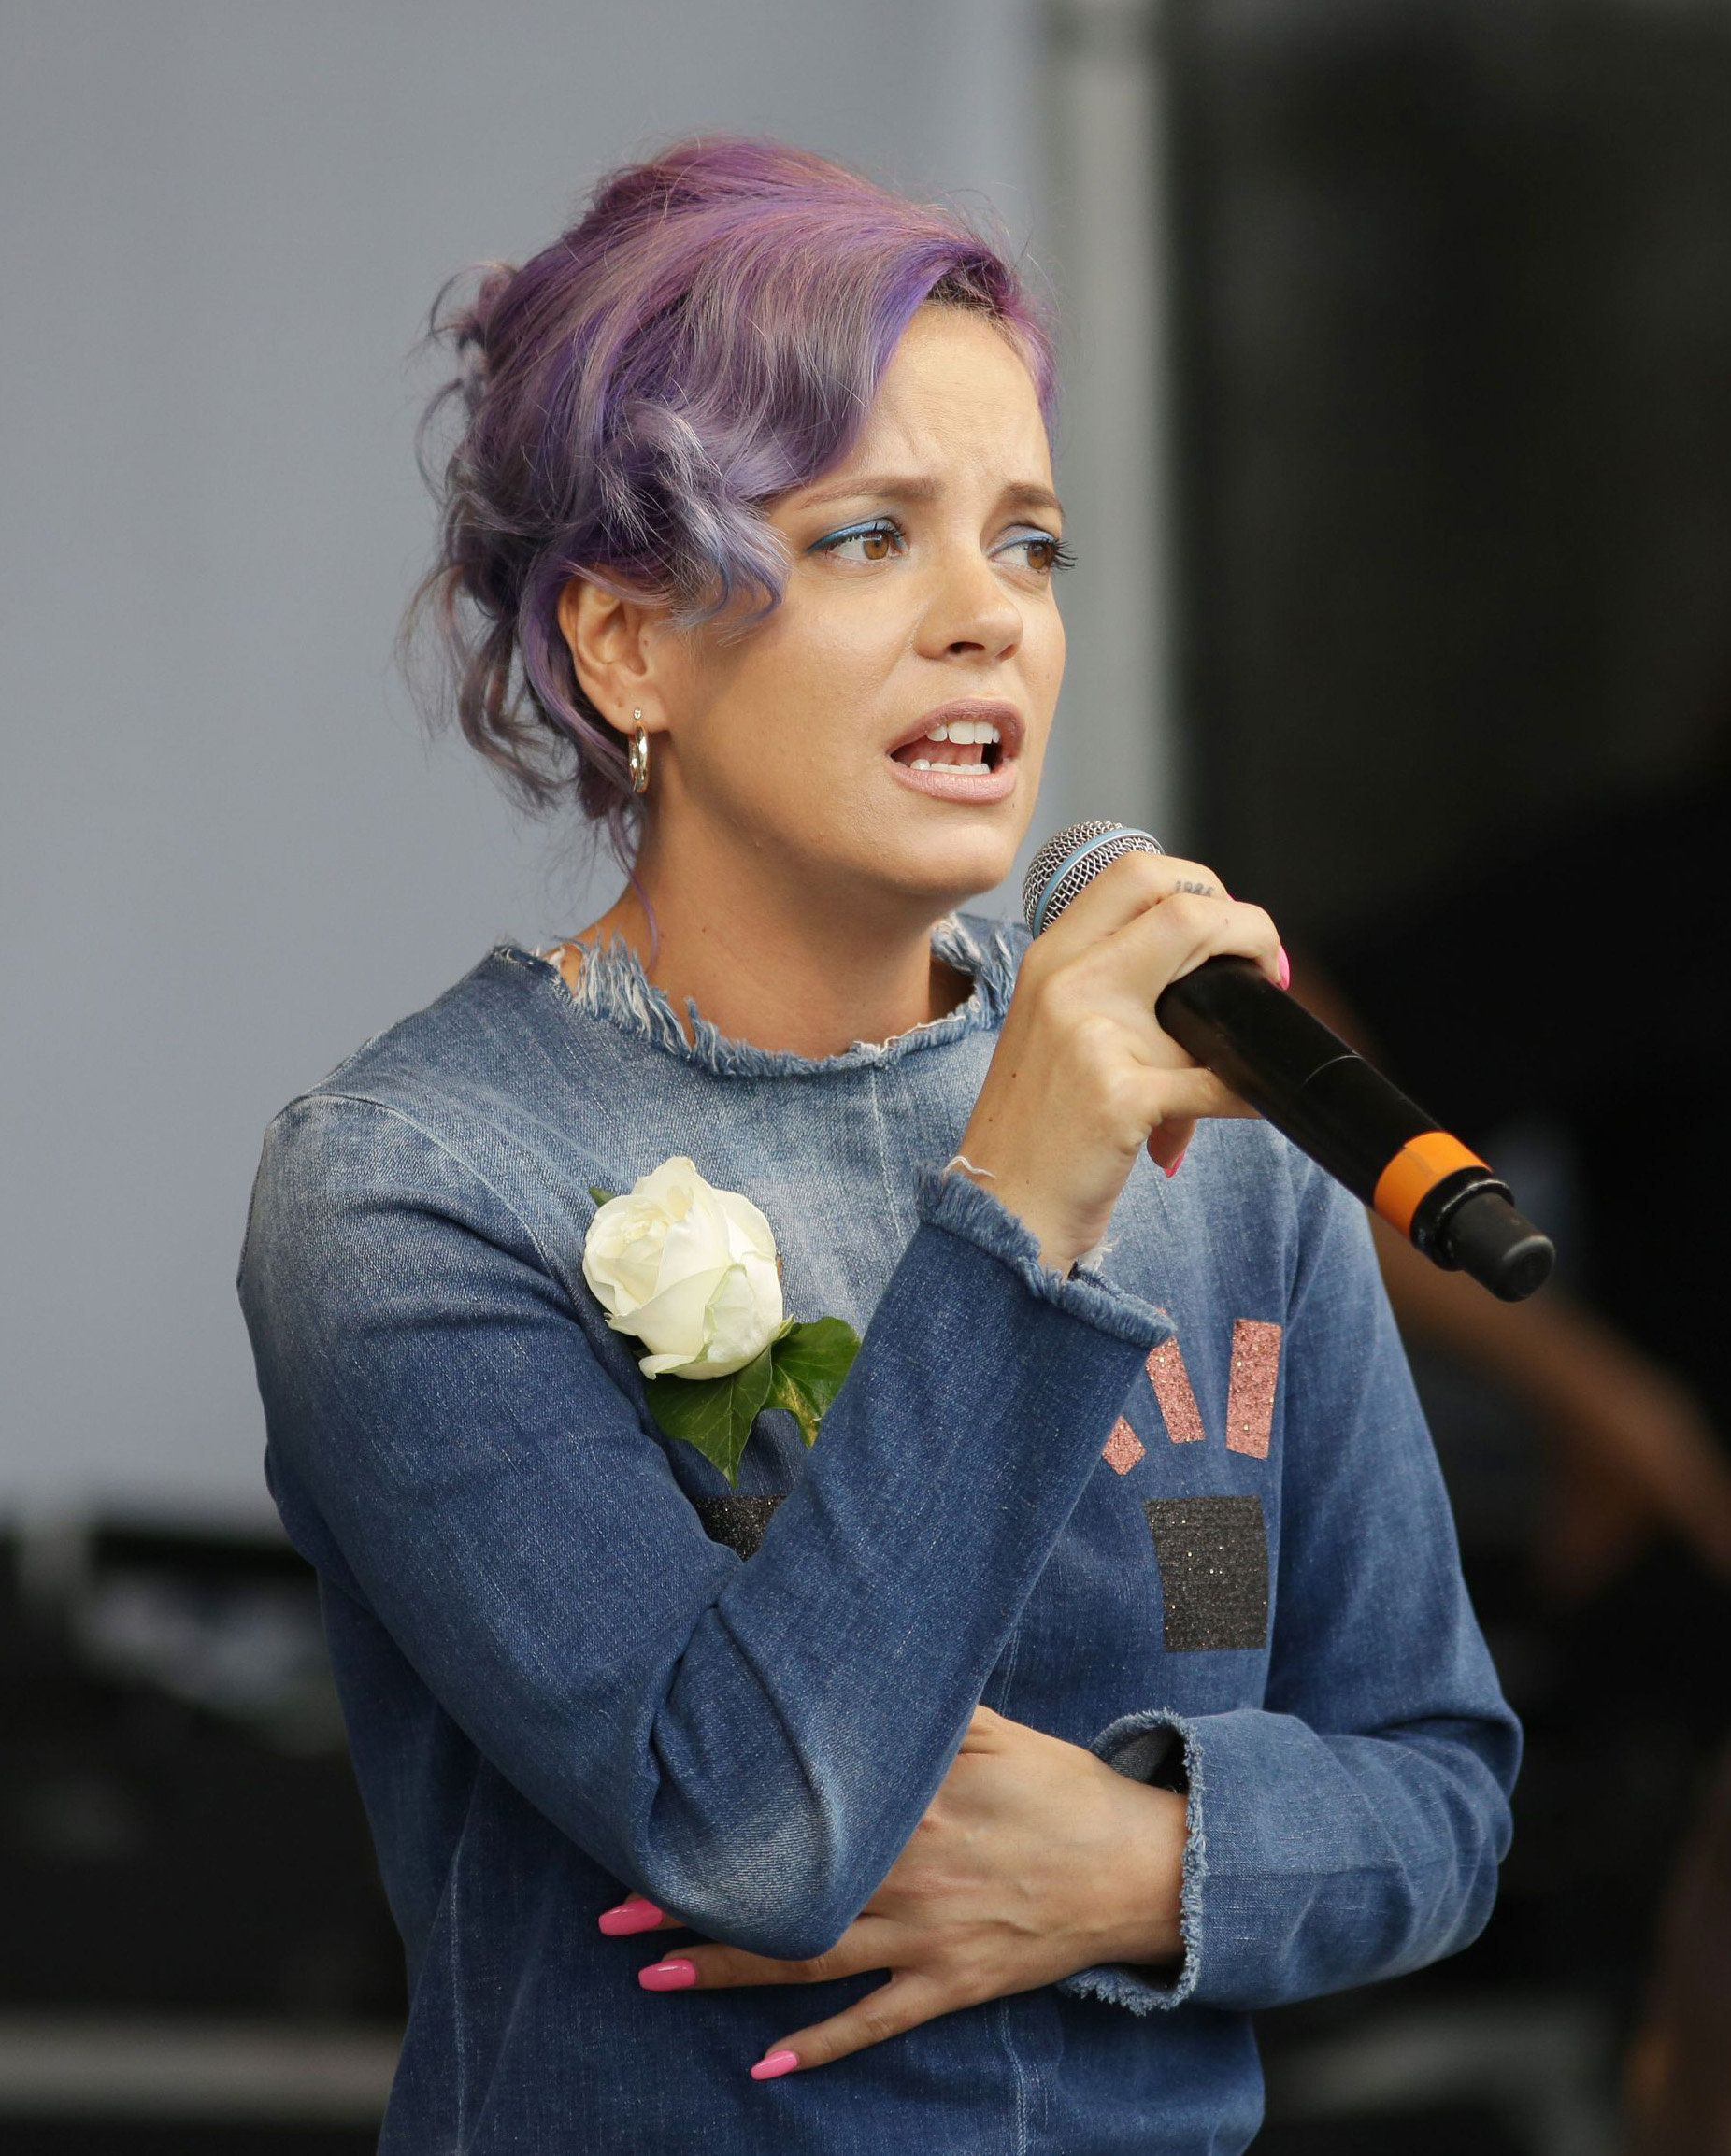 Lily Allen shares the story of how record executive sexually assaulted her